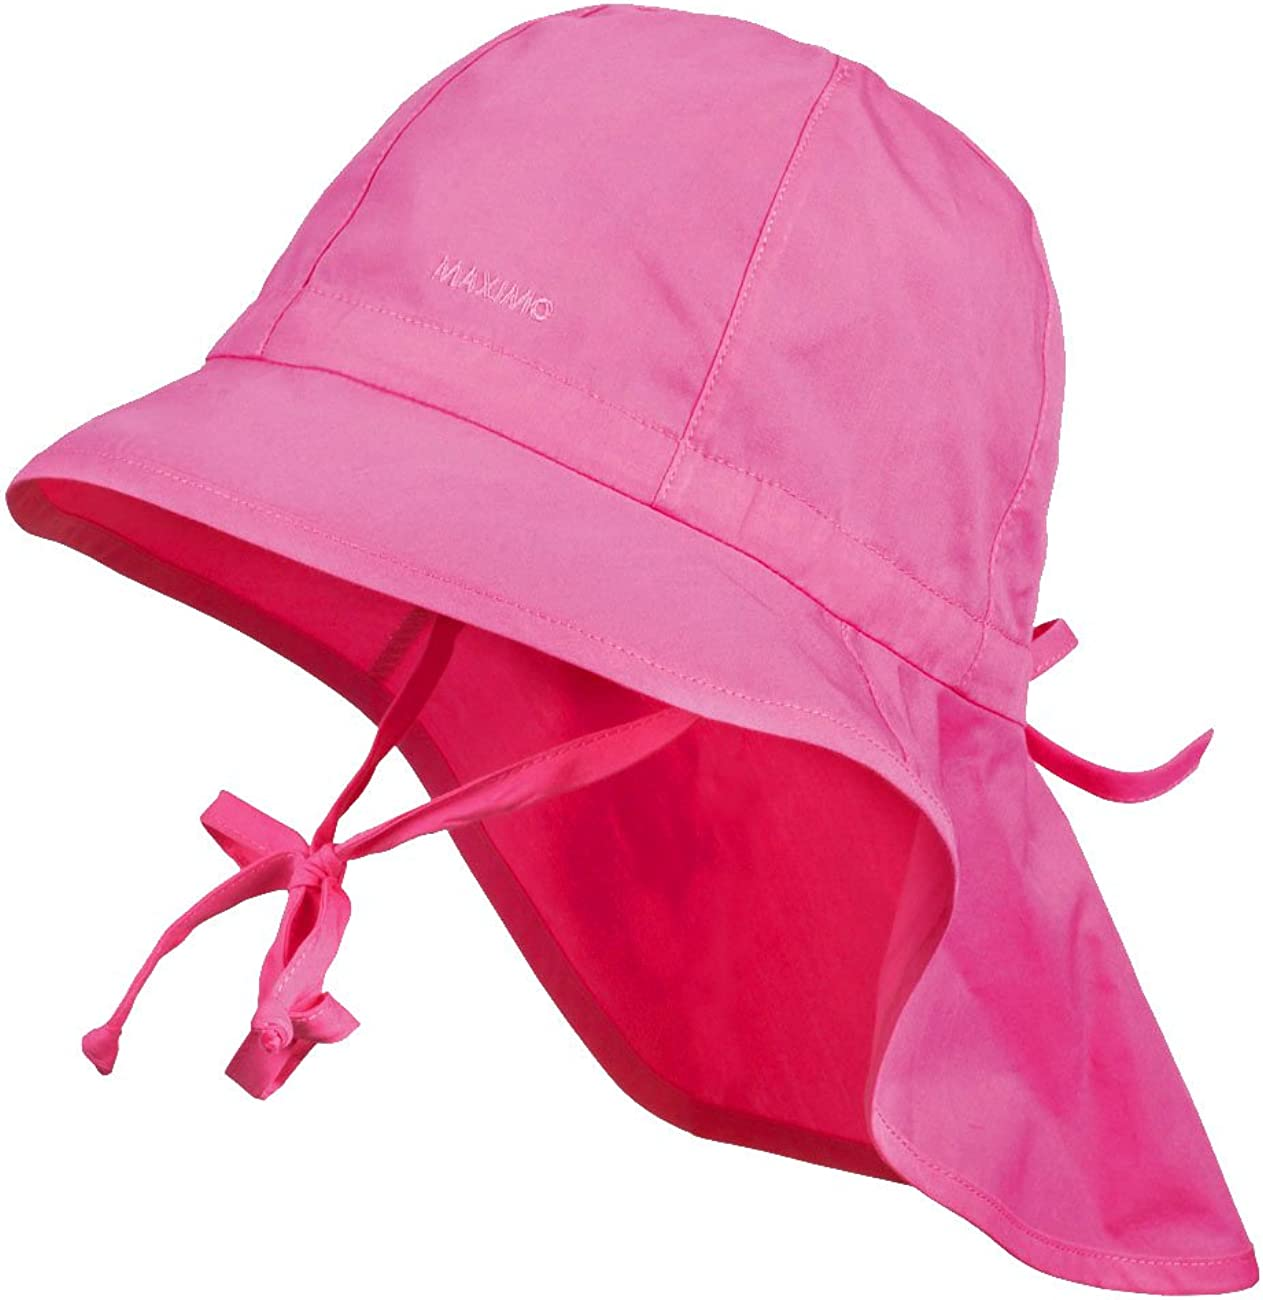 Hat Maximo Girls Sun Protection Hat with Neck Protection And Strings Plain UPF 30